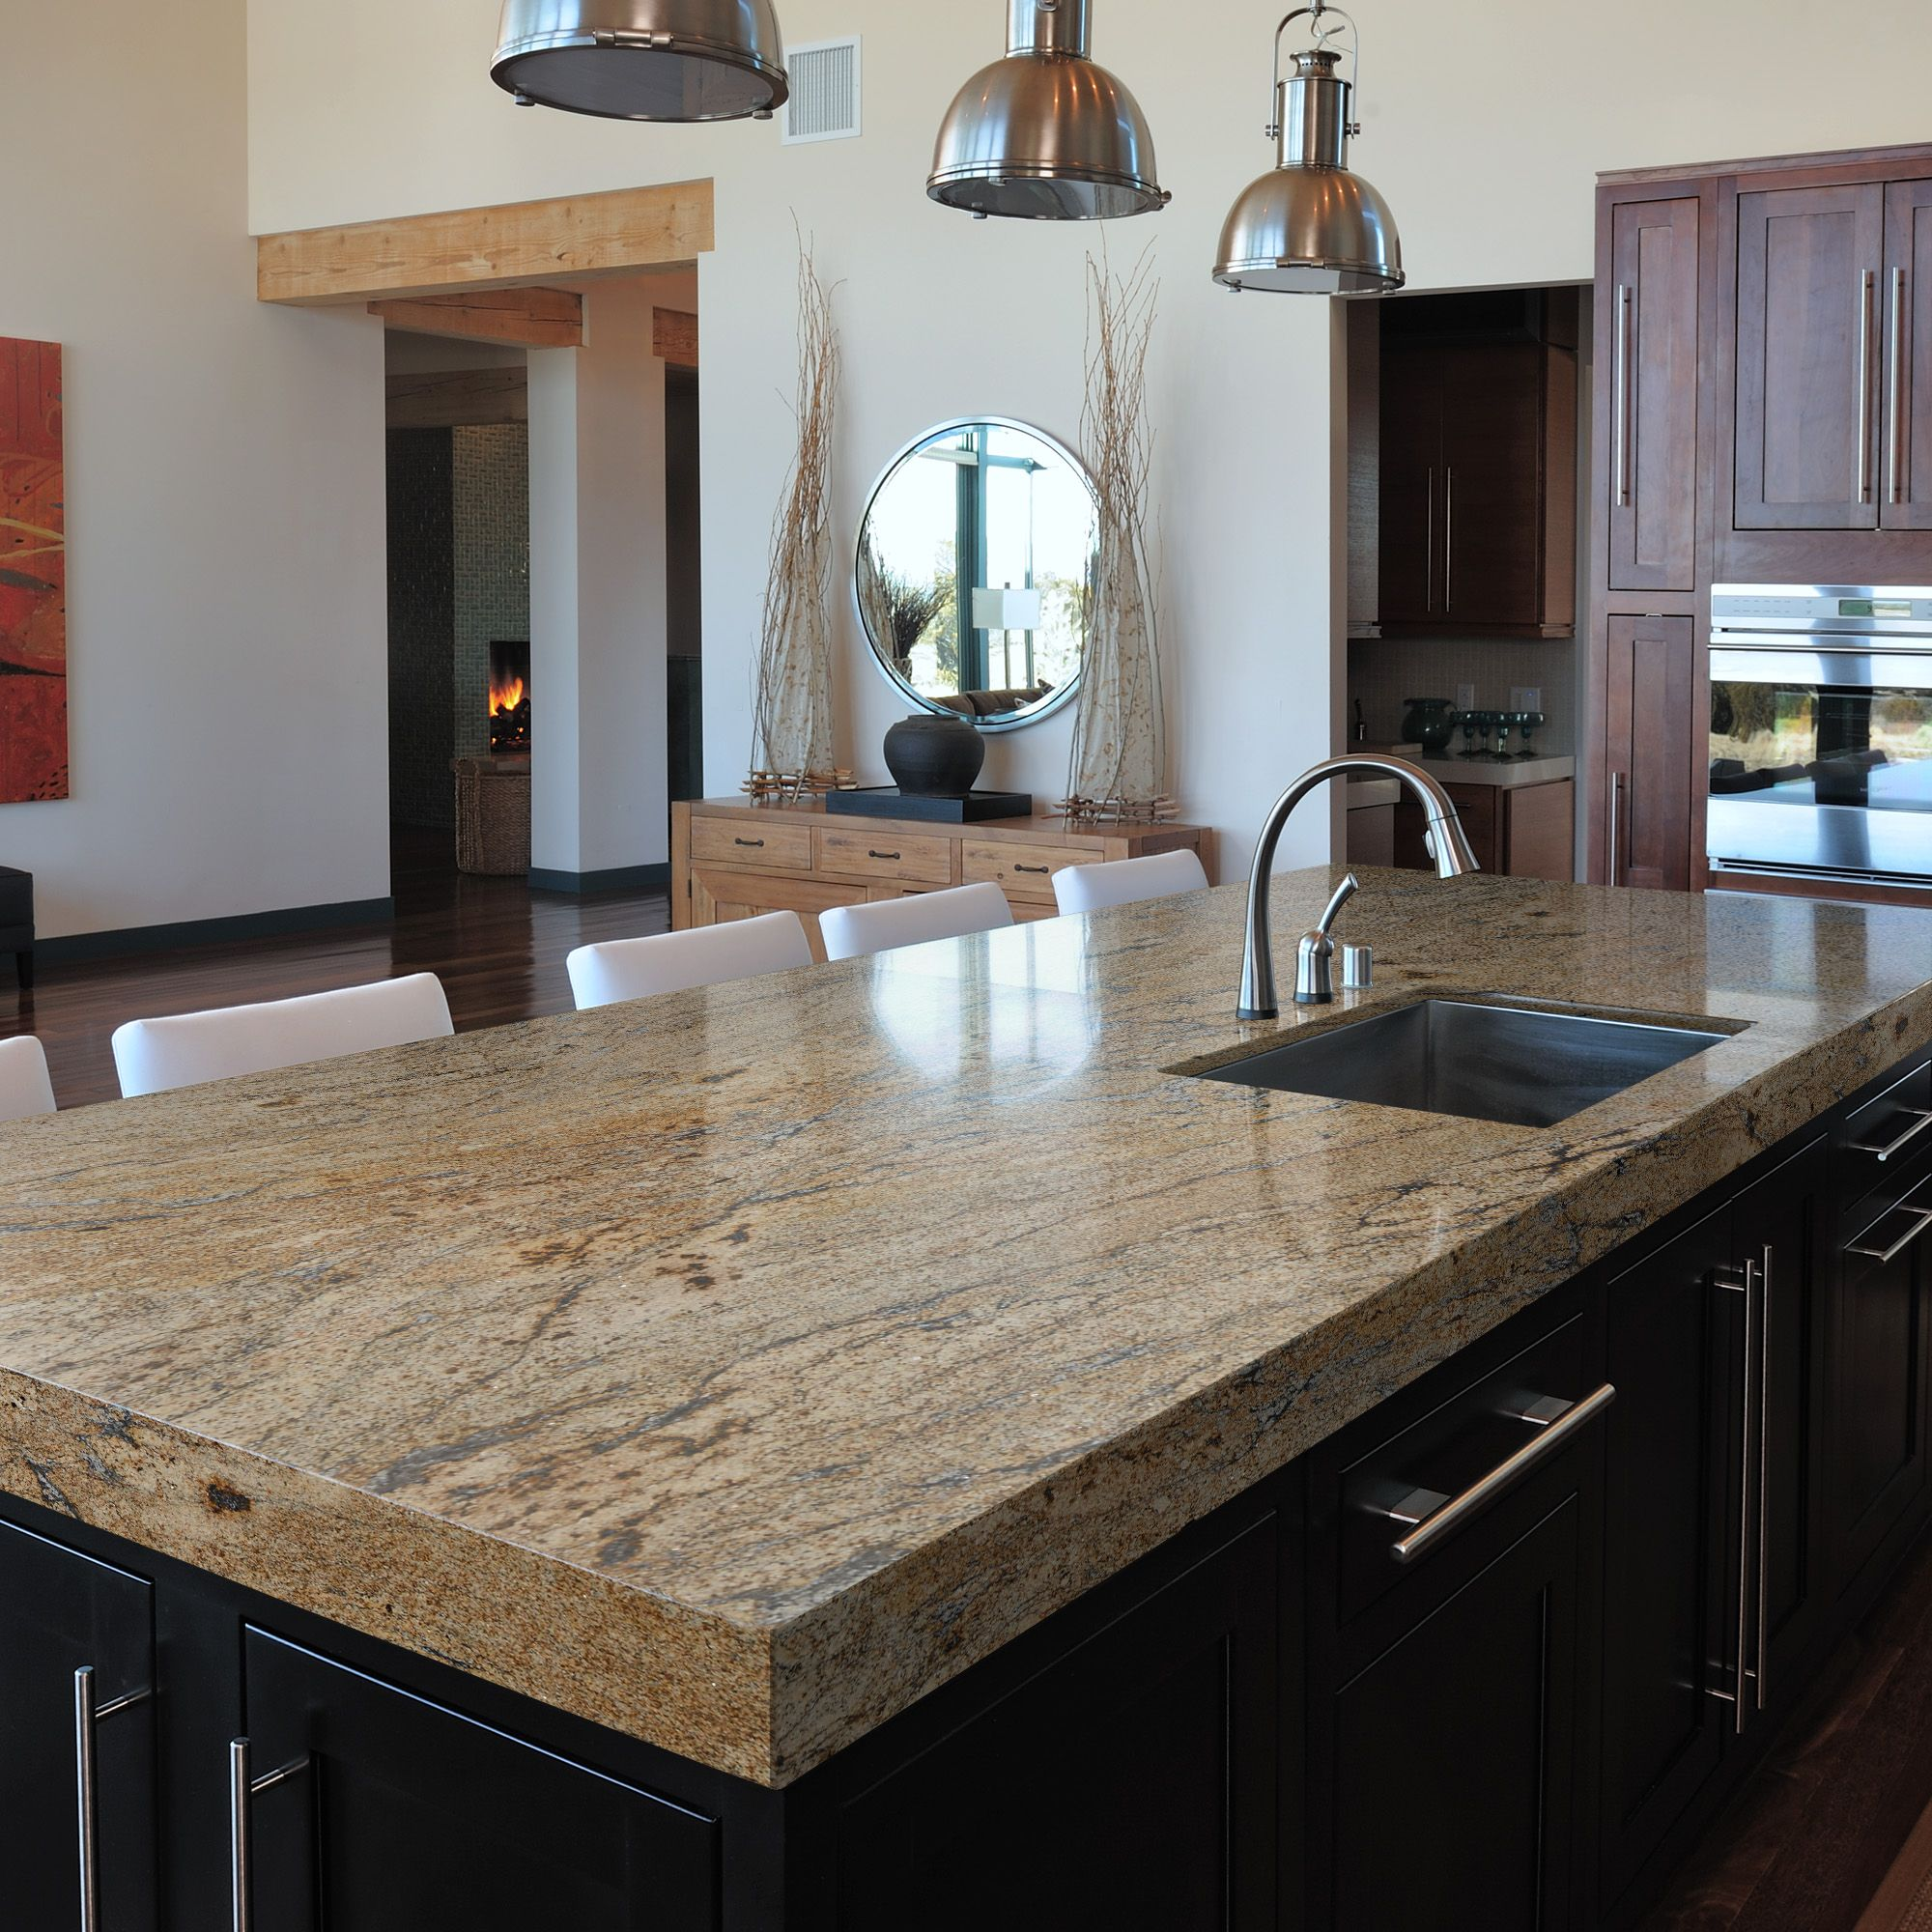 Our granite for our new kitchen ira picked out awesome for Cabine el dorado